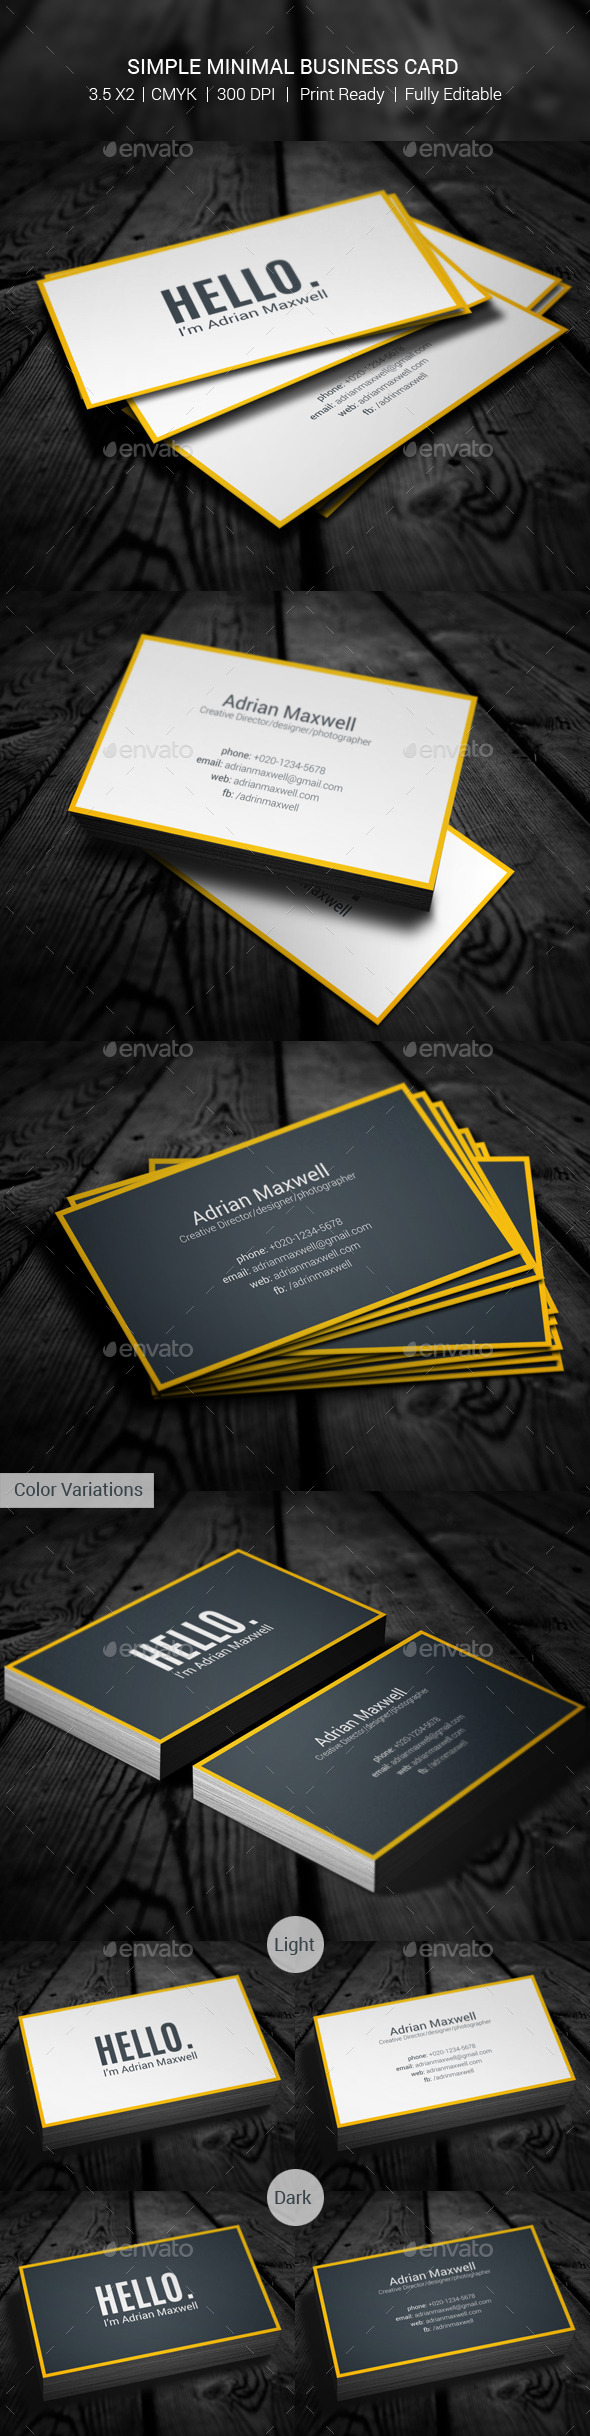 Simple Minimal Business Card - Creative Business Cards